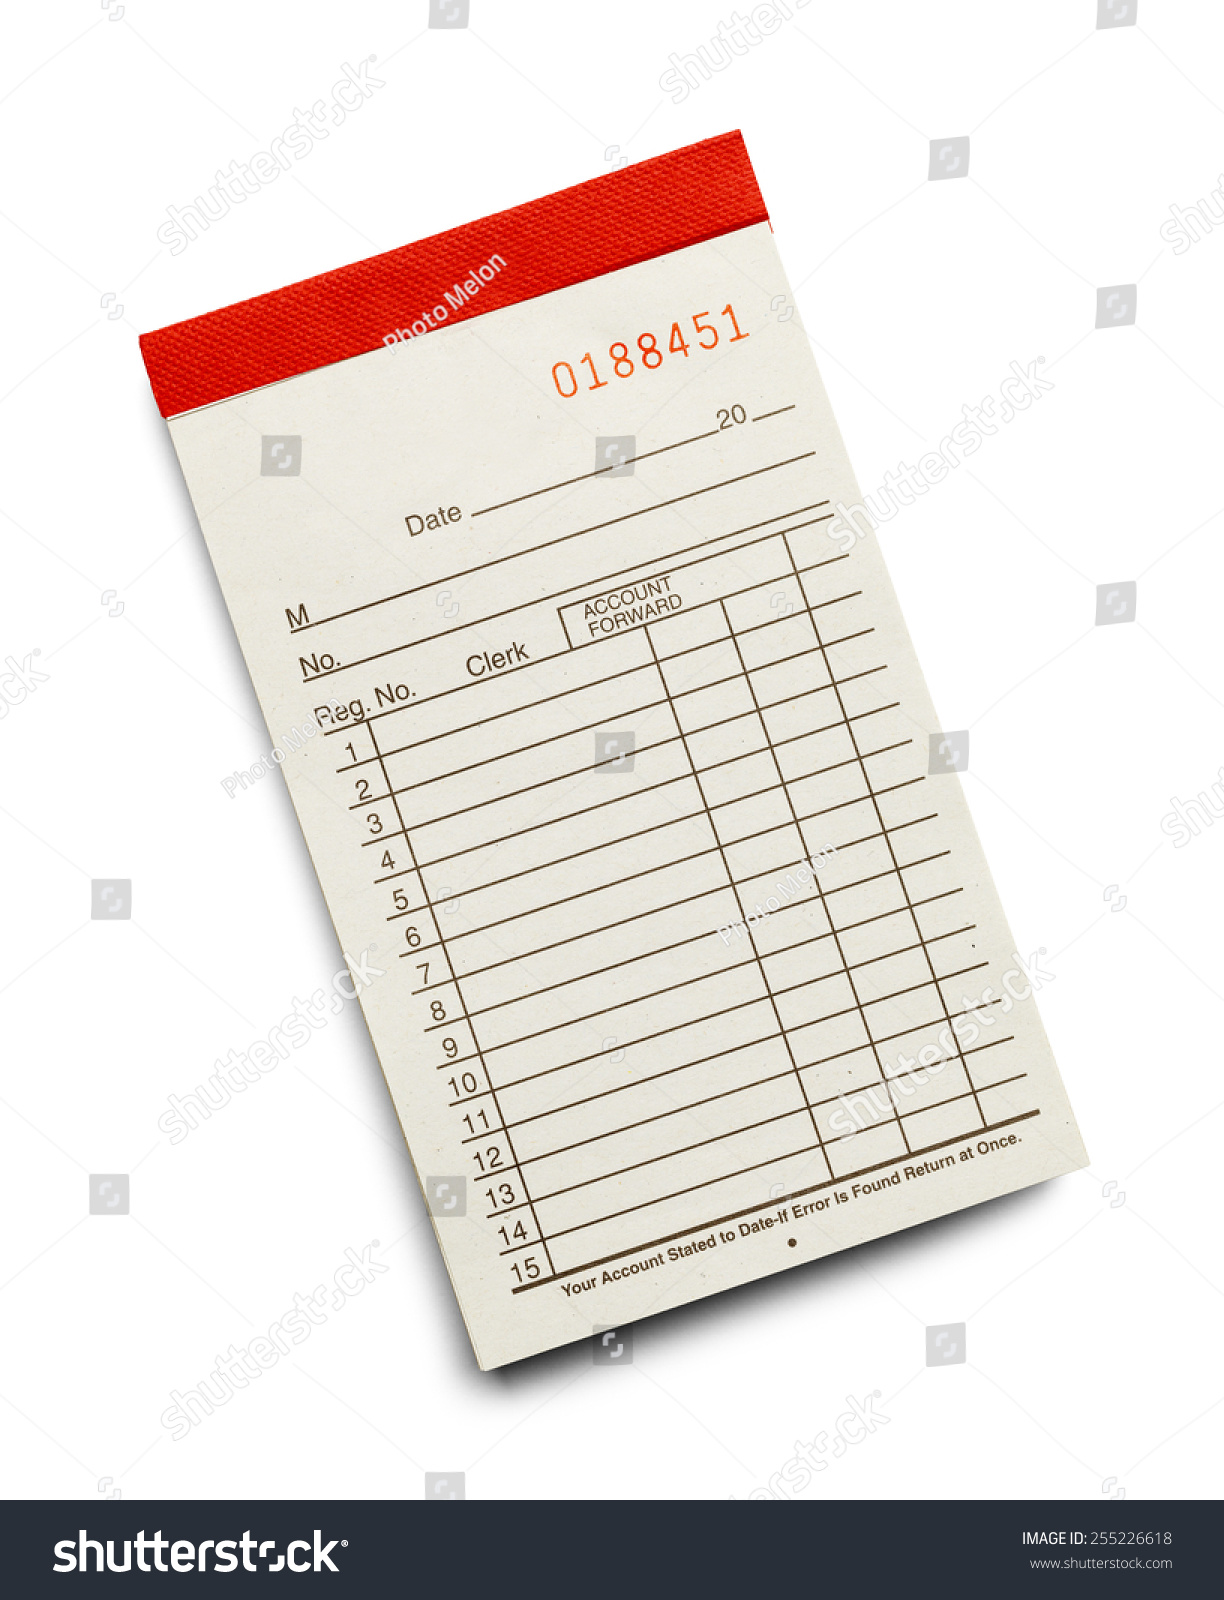 Receipt Pad With Copy Space From The Top View Isolated On. Resume Templates For Management Template. Sample Entry Level Sales Resumes Template. Questions To Ask Employer During Phone Interview Template. Office Name Plate Template